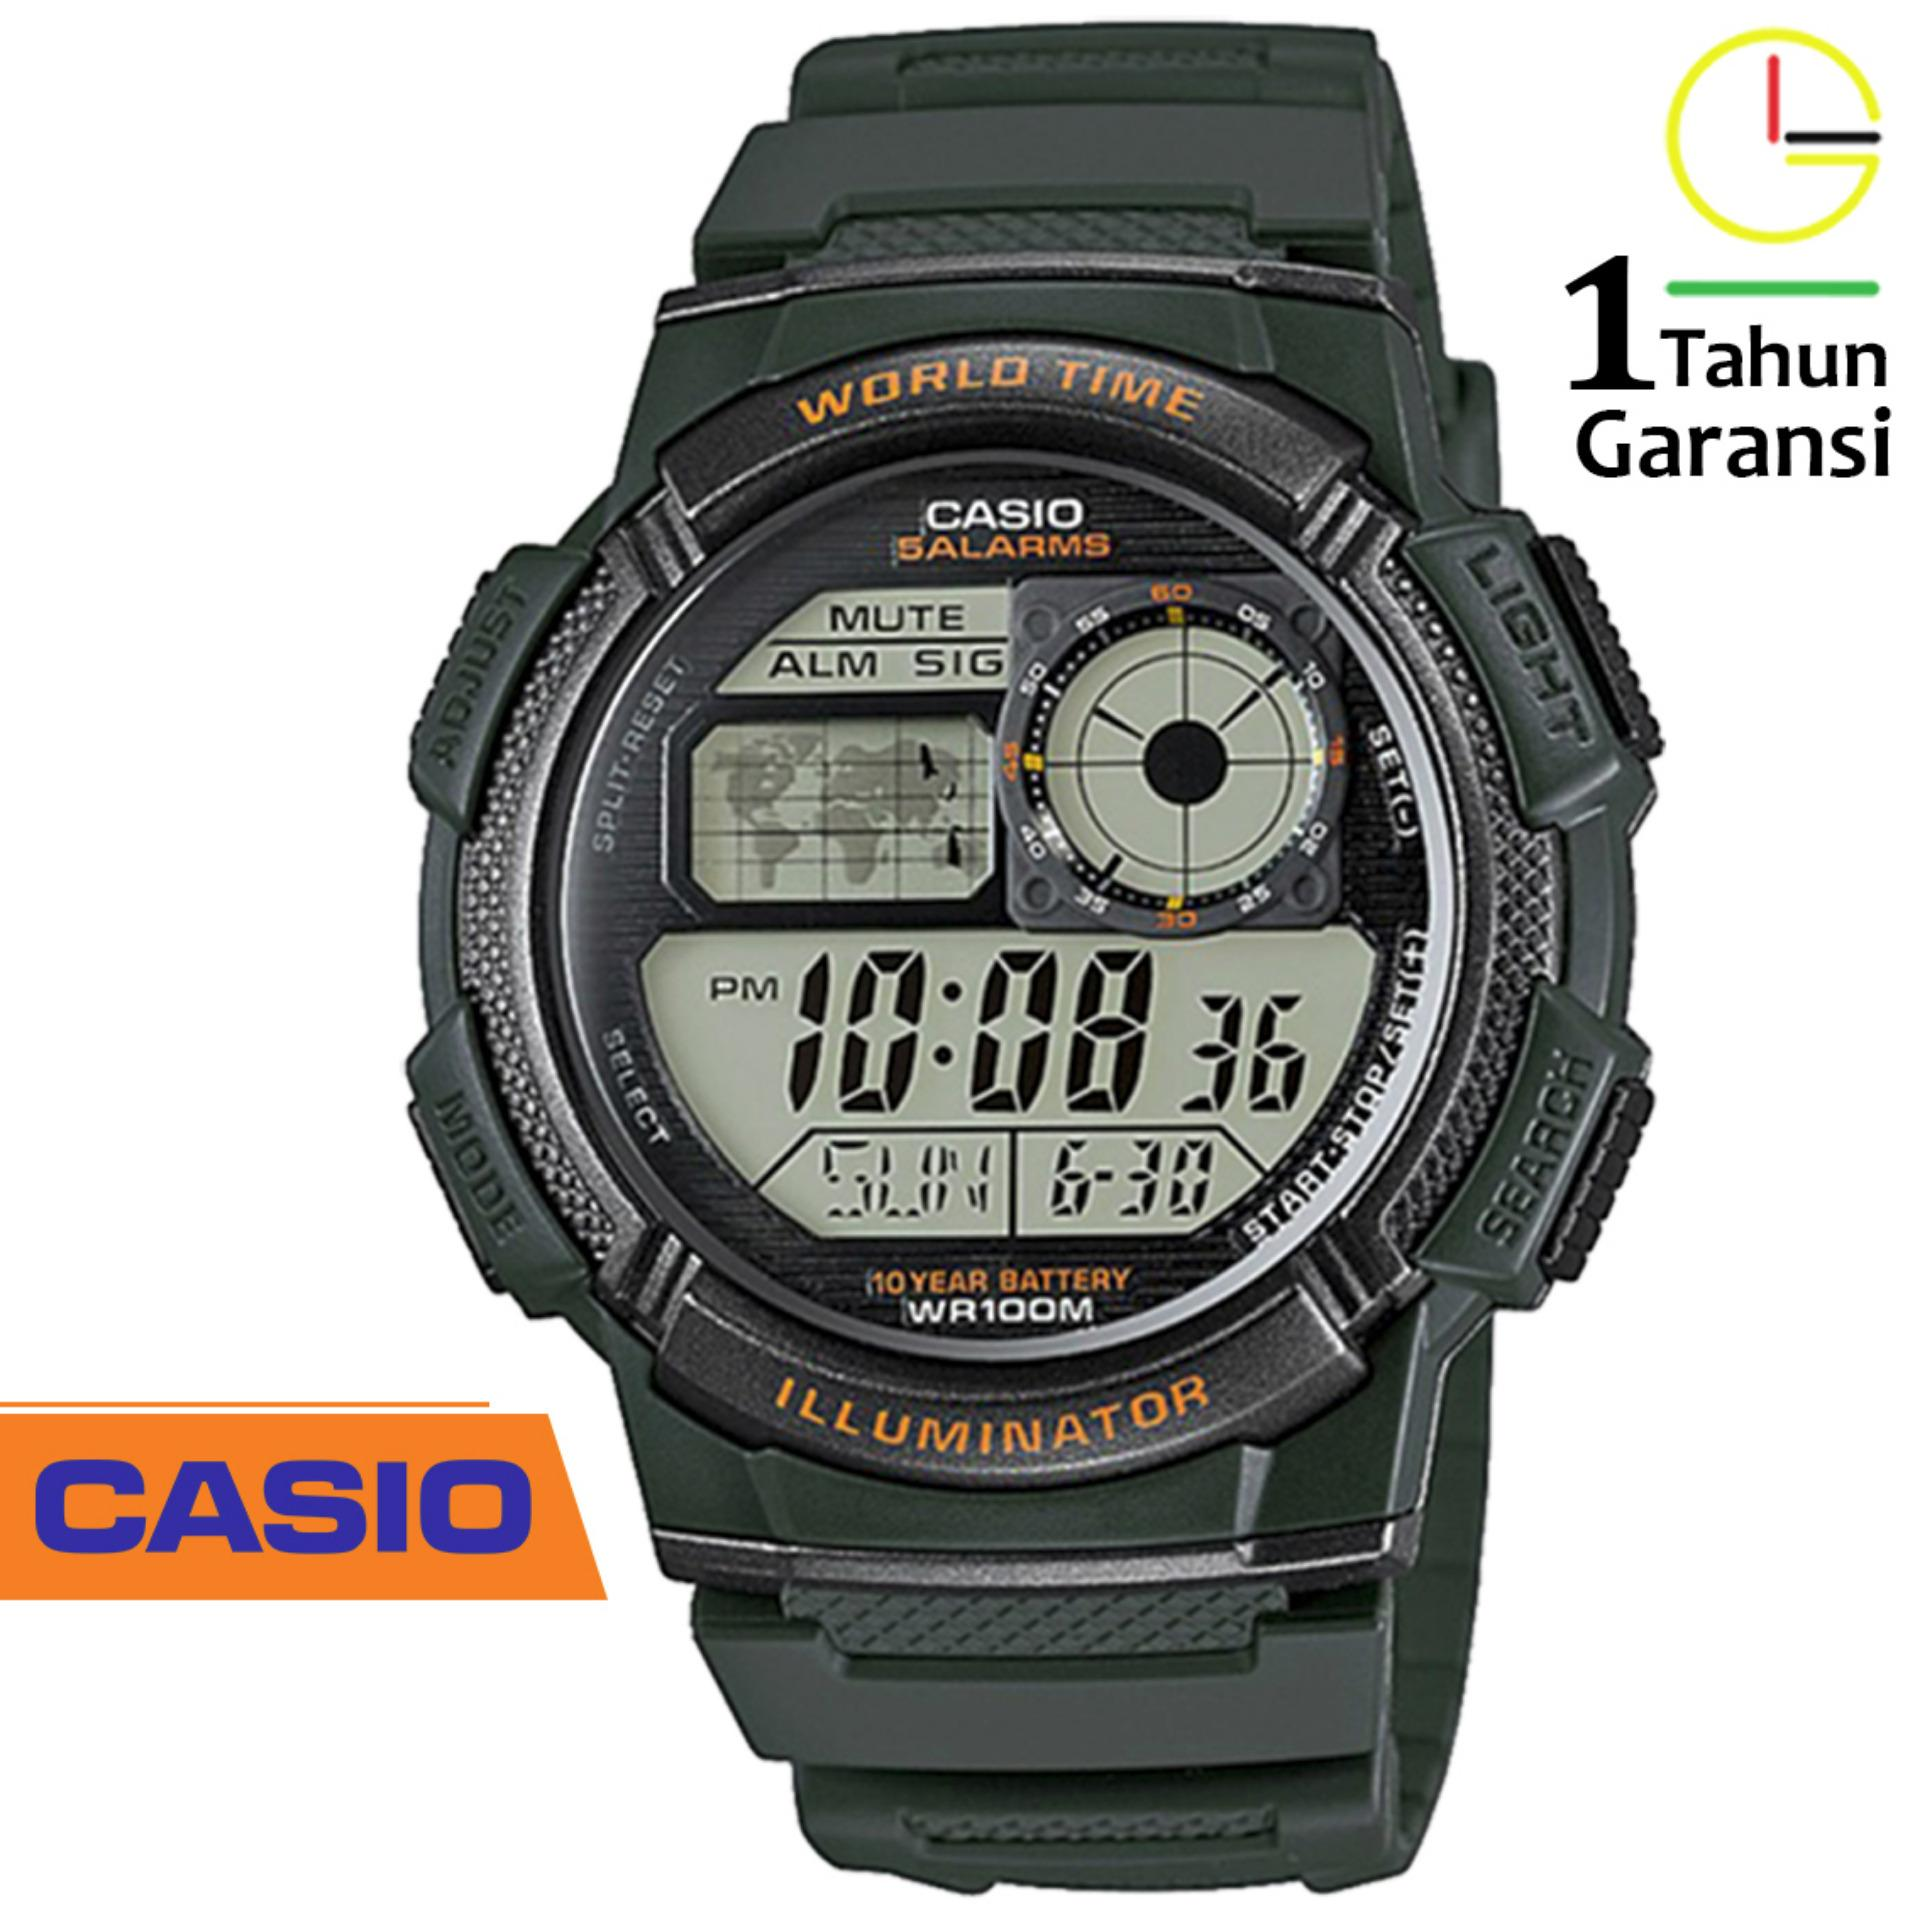 CASIO Illuminator AE-1000W Jam Tangan Pria sport Tali Karet Digital Movement